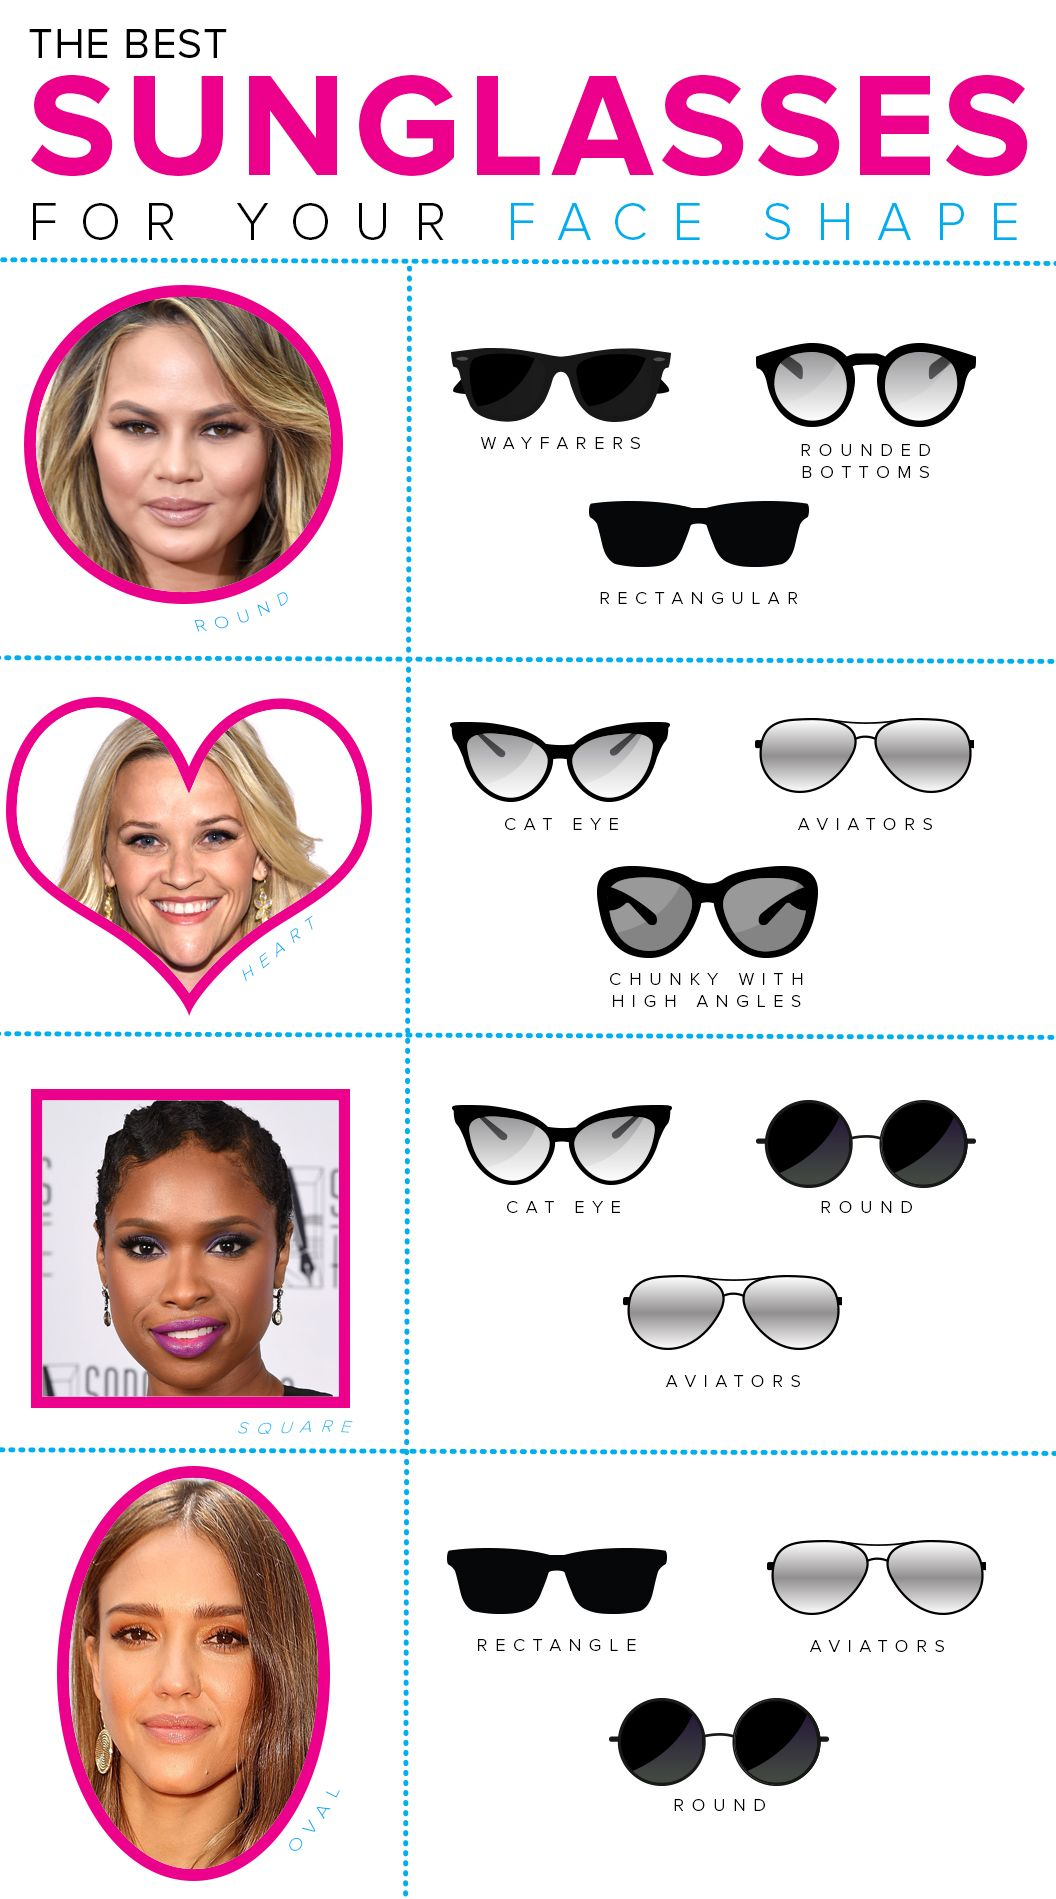 595592cc62 This guide will help you find the best sunglasses for your face shape.  These sunglass styles will fit your face shape. There are tips to help make  the ...